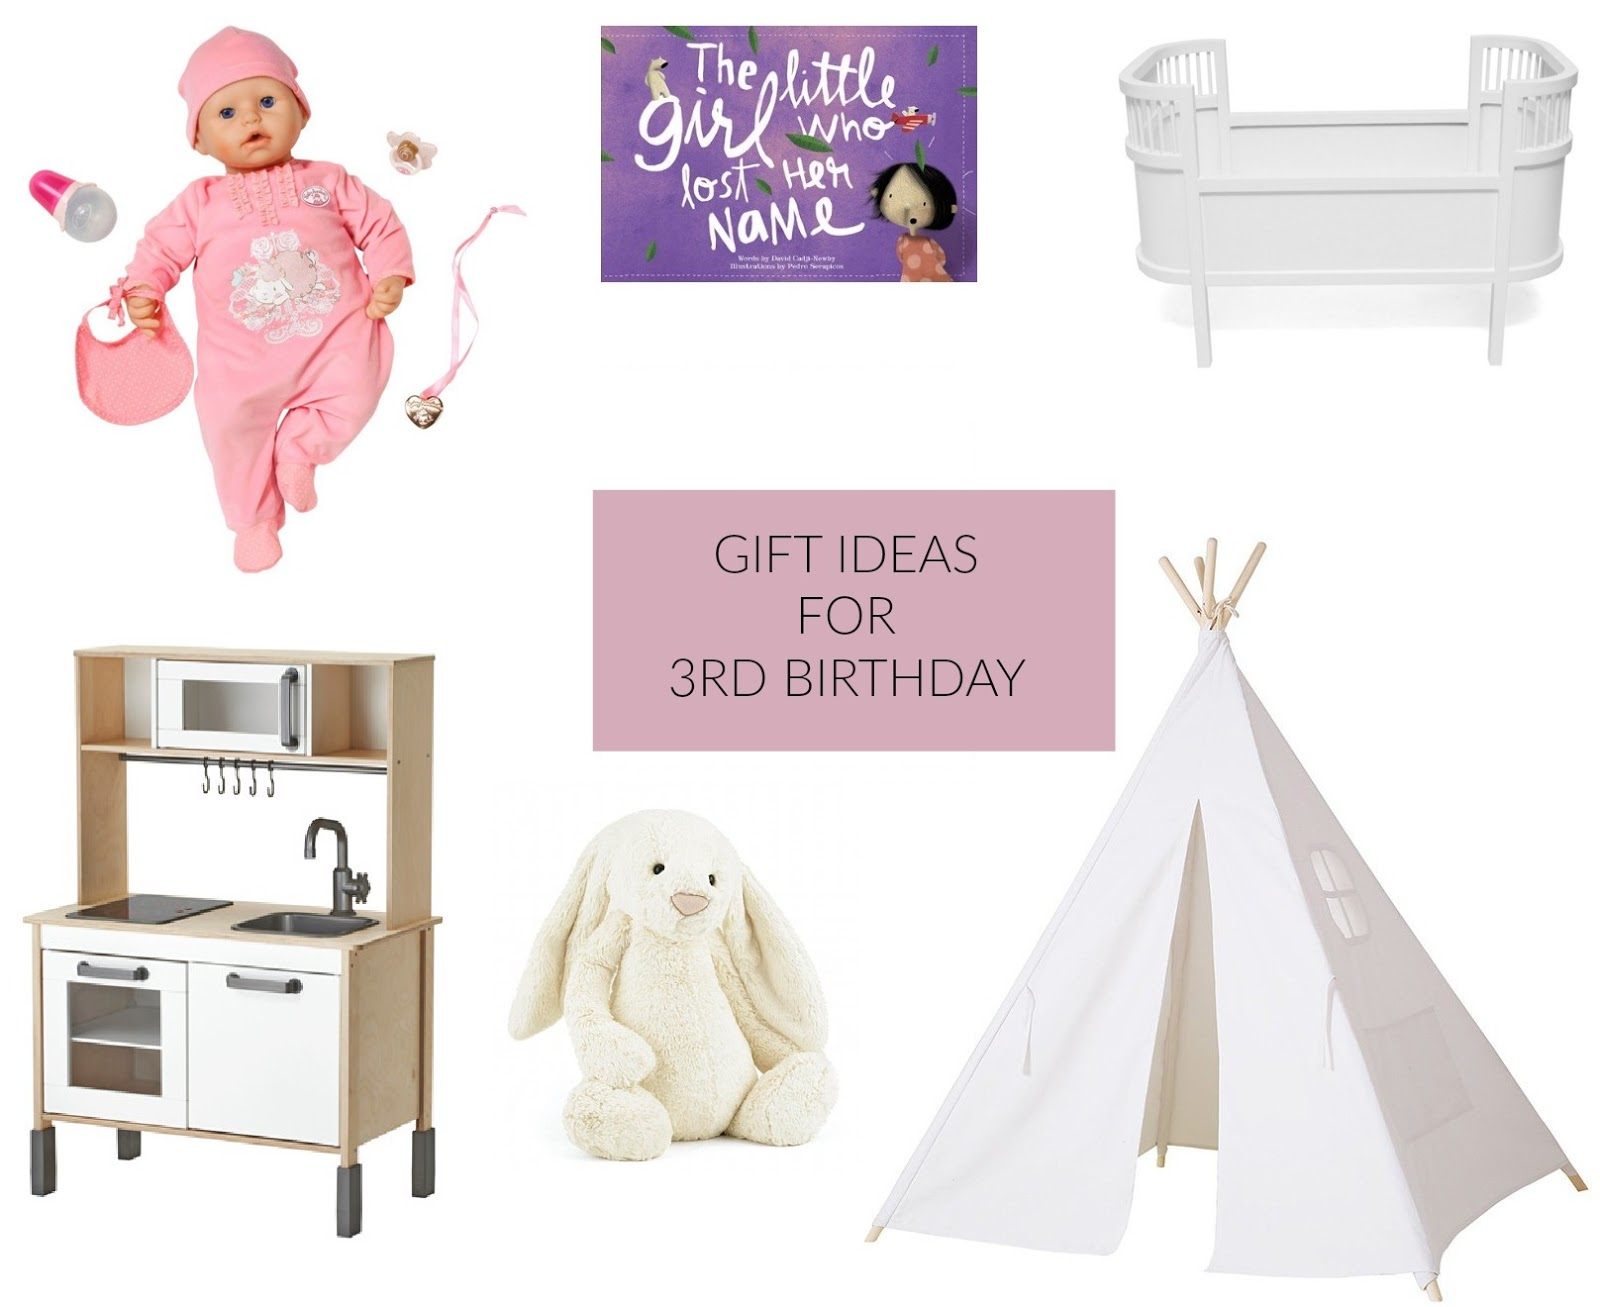 Gift Ideas For 3rd Birthday Sophie Ella and Me